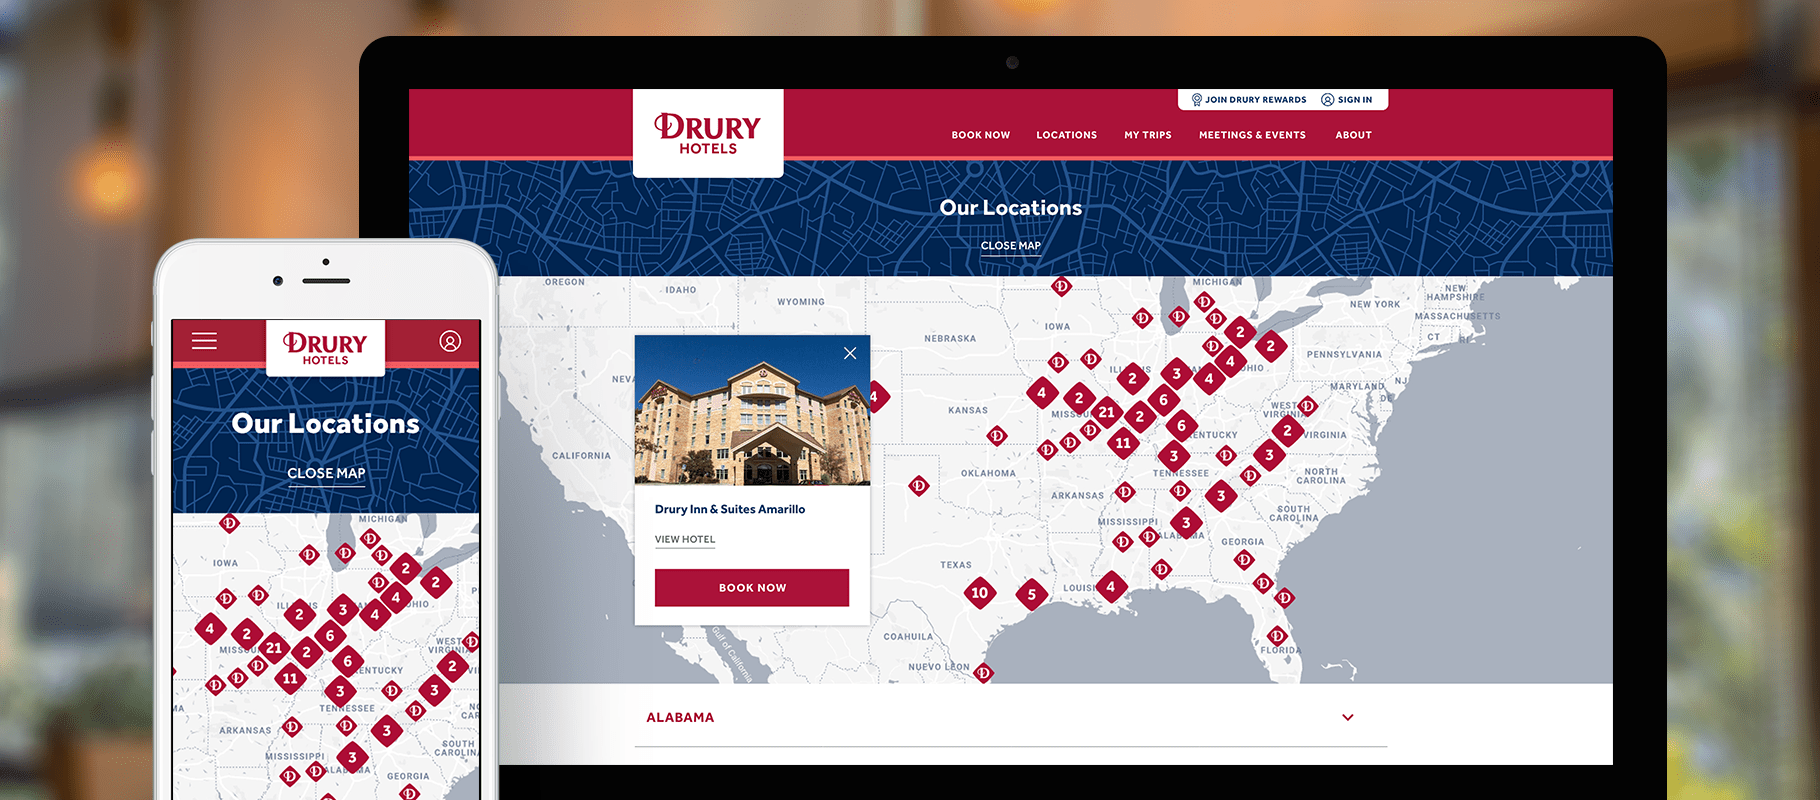 Drury Hotels website page designs on a smartphone and a desktop computer